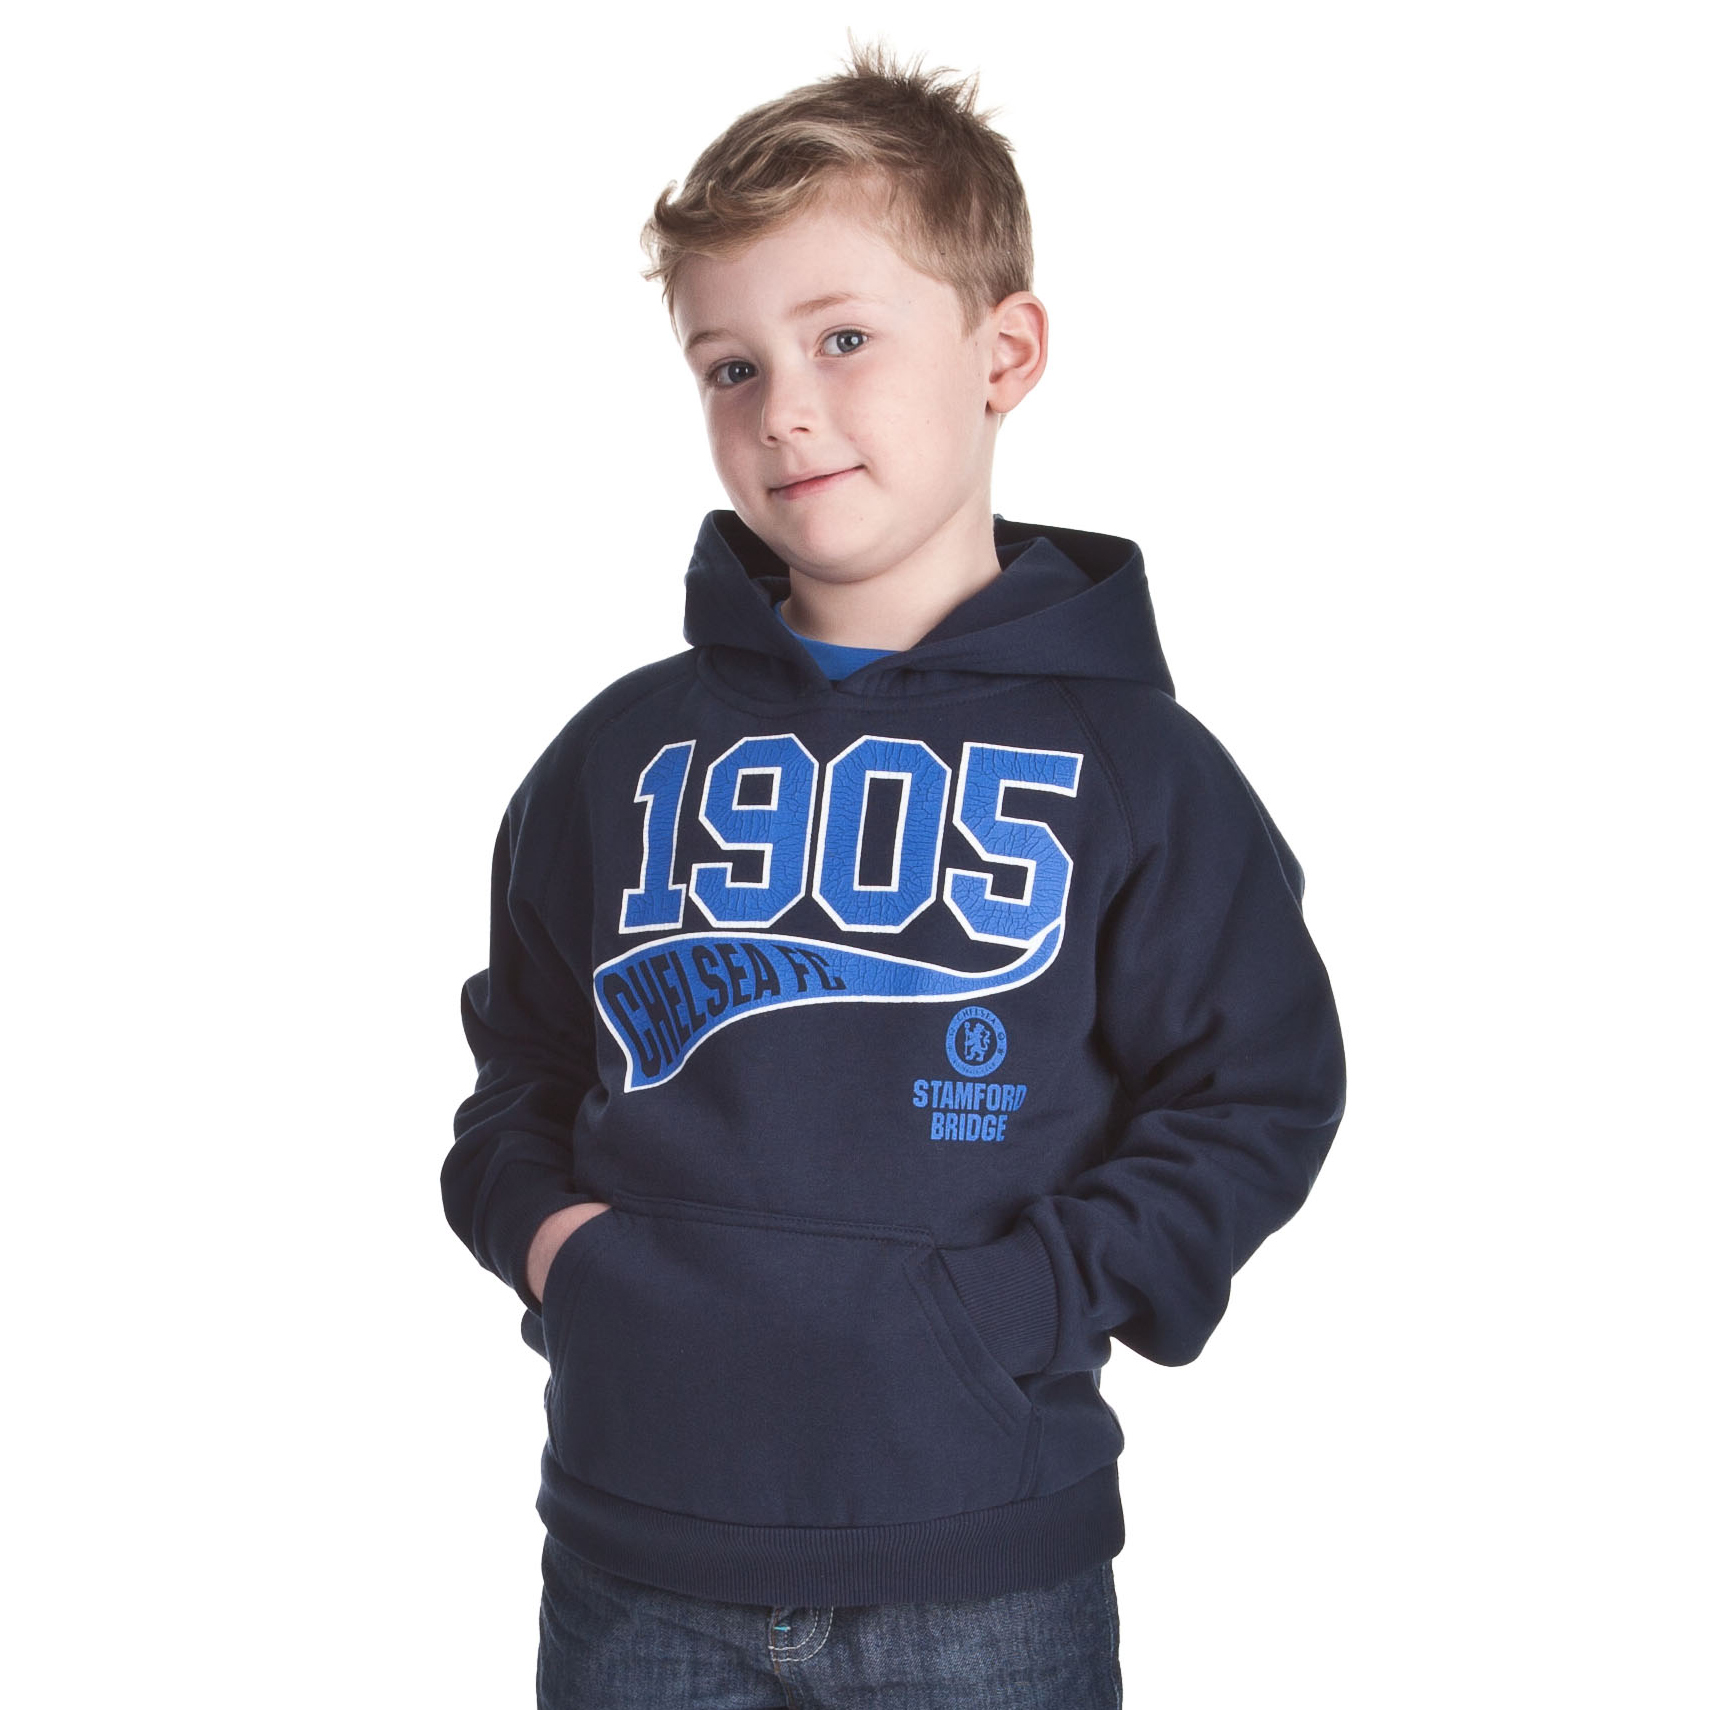 Chelsea Fashion 1905 Graphic Hoody - Navy - Older Boys